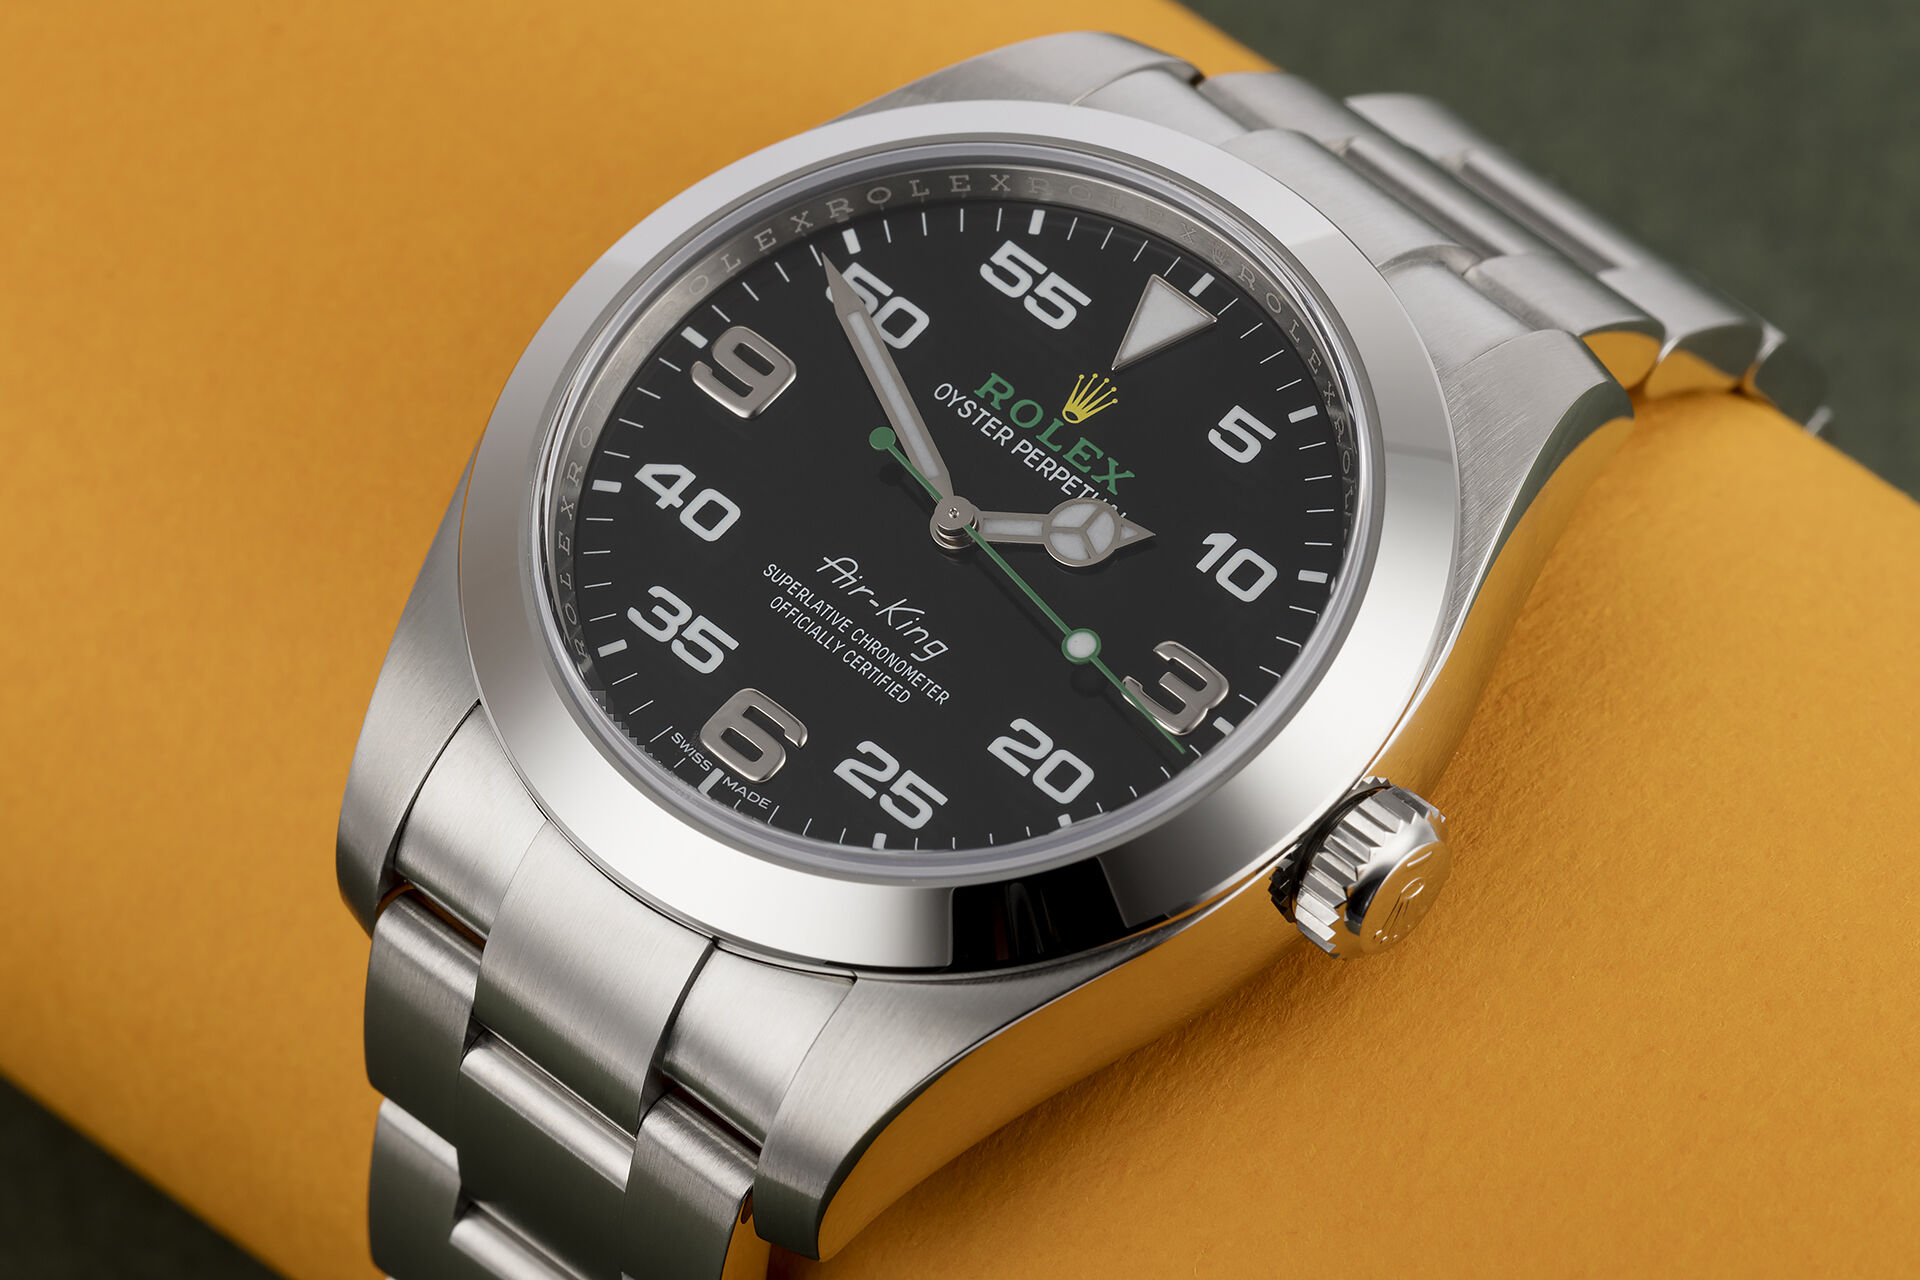 ref 116900 | '5 Year Warranty' | Rolex Air-King